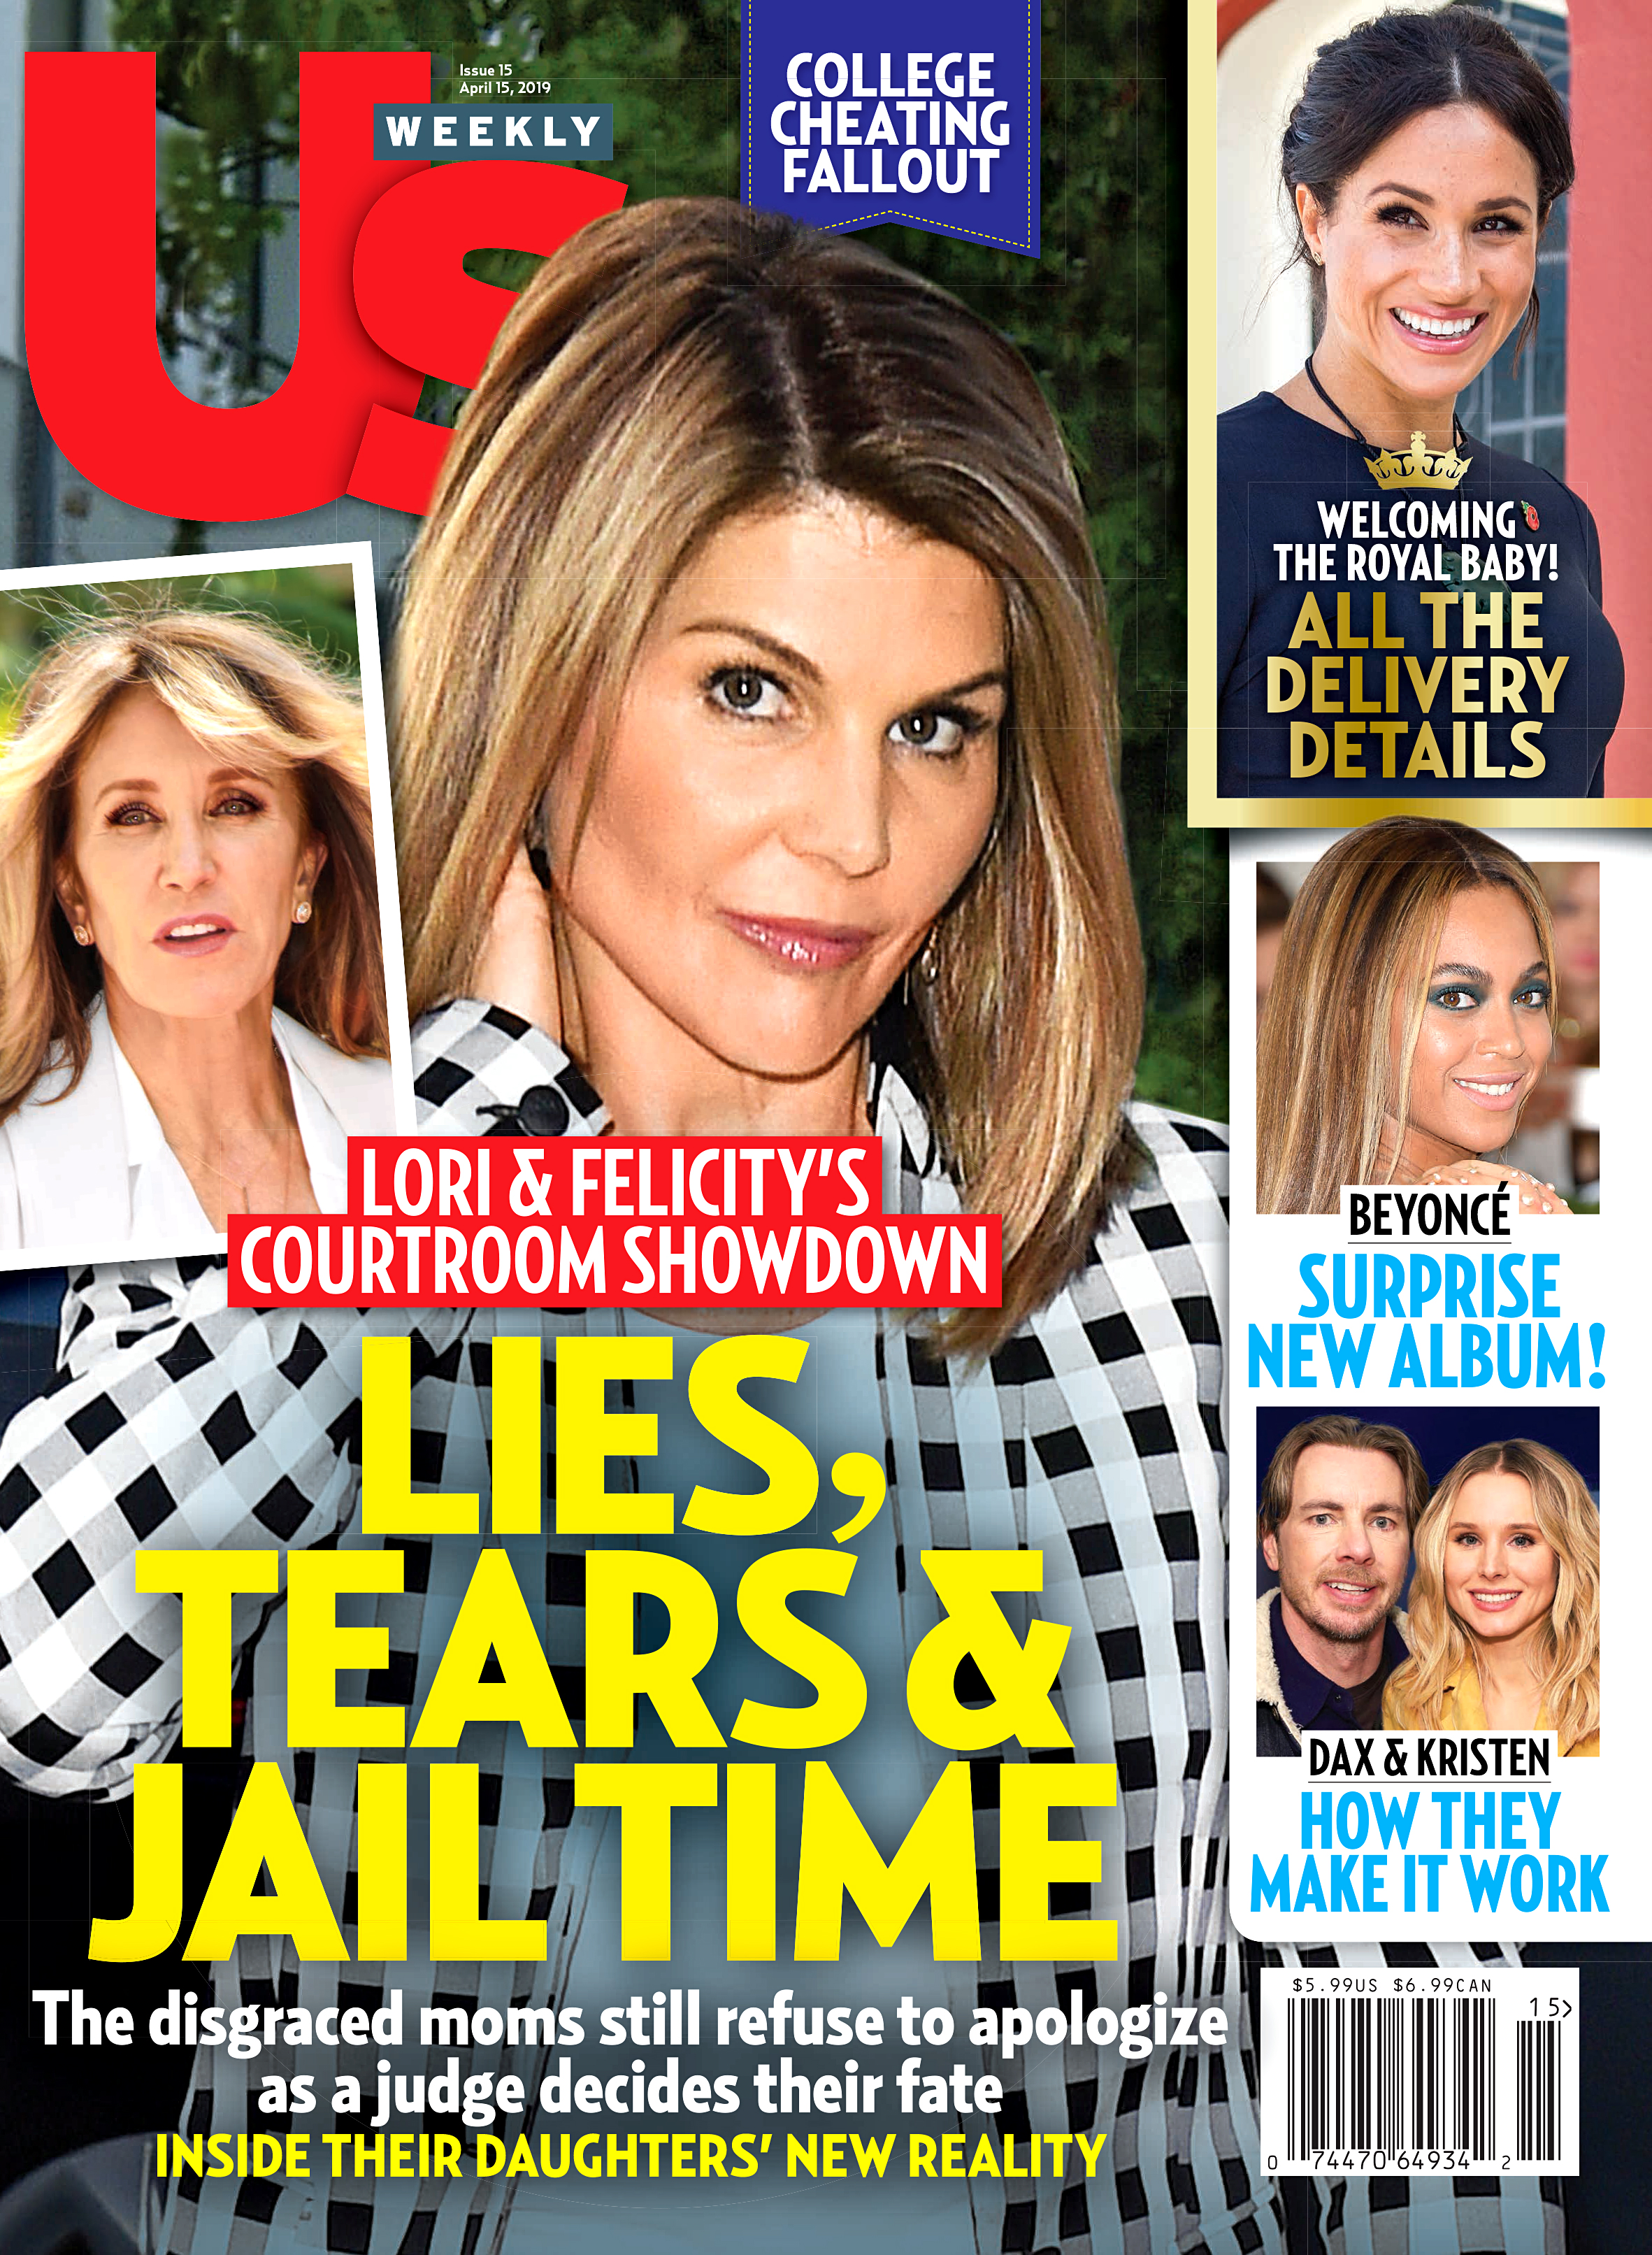 UW1519 Us Weekly cover Lori Loughlin